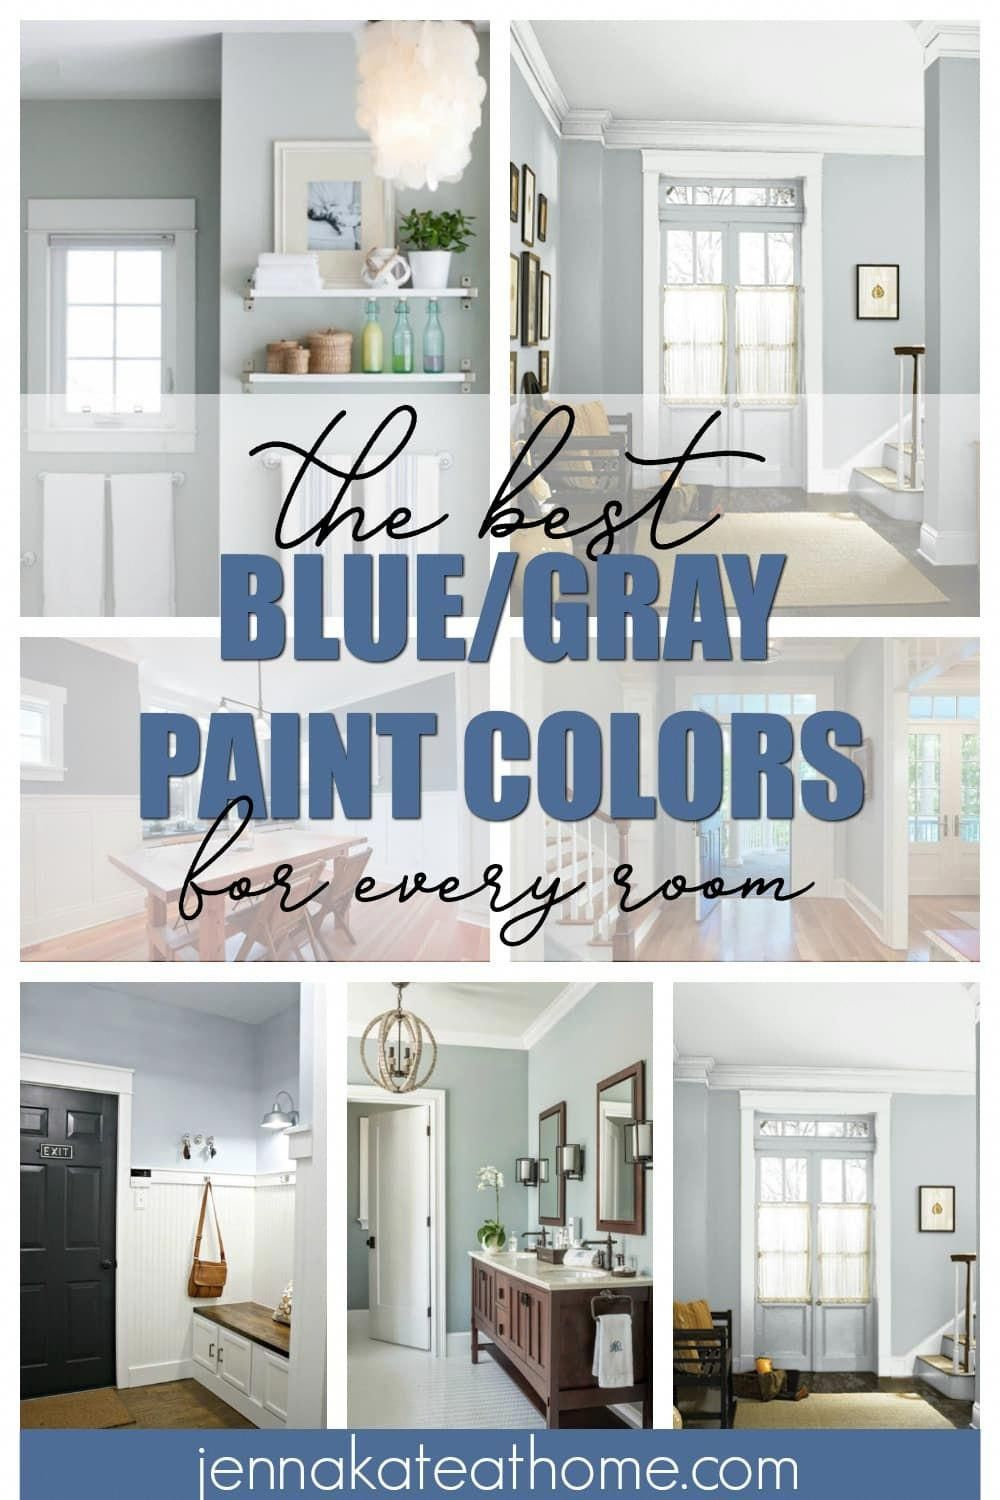 Shades of blue gray paint are totally on trend and shown